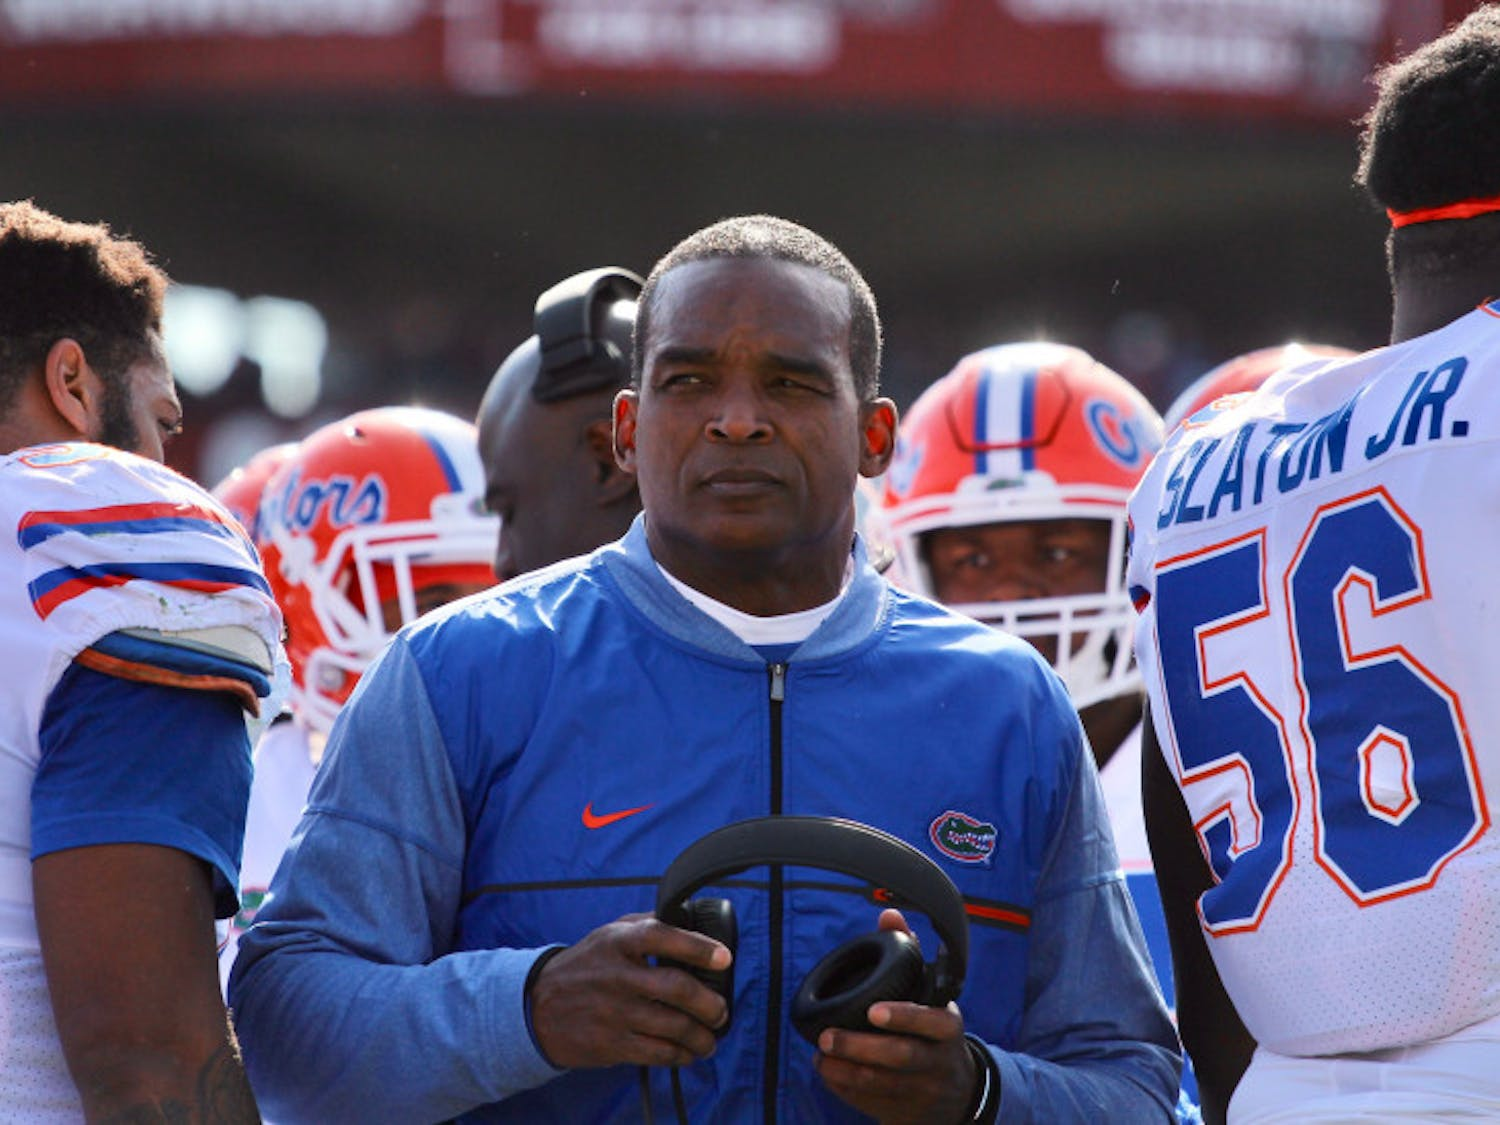 After practice on Tuesday, Randy Shannon said offensive lineman Antonio Riles likely won't play this week, adding to an already extensive injury list. Among the players out for the season are safety Marcell Harris, defensive lineman Jordan Sherit, center T.J. McCoy, running back Malik Davis, quarterback Luke Del Rio and offensive lineman Brett Heggie, all of whom were starters.